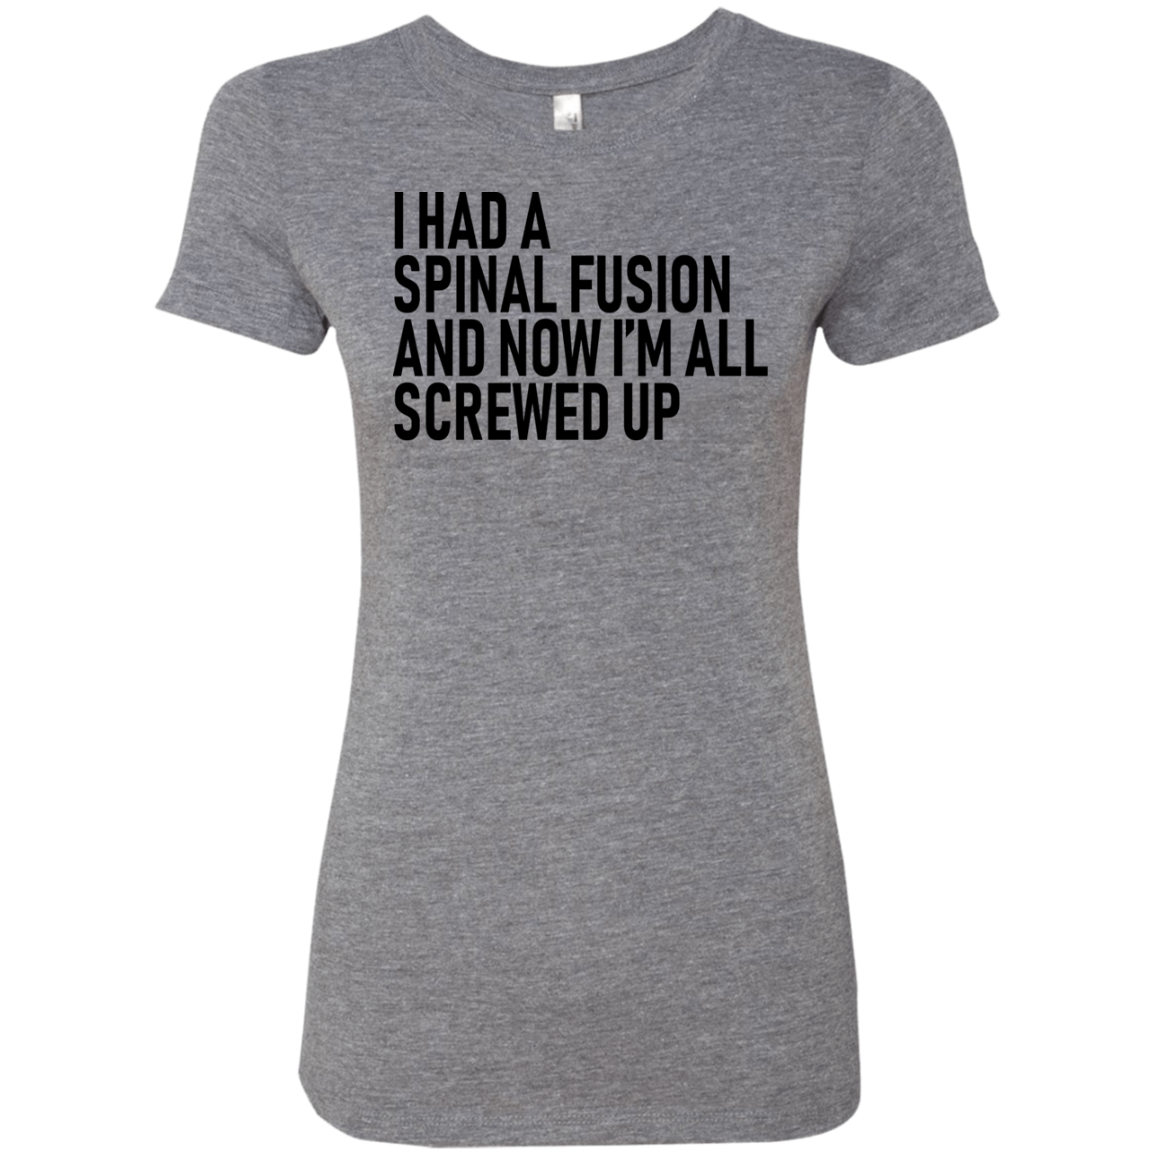 I Have A Spinal Fusion And Now I'm All Screwed Up Women's Classic Tee